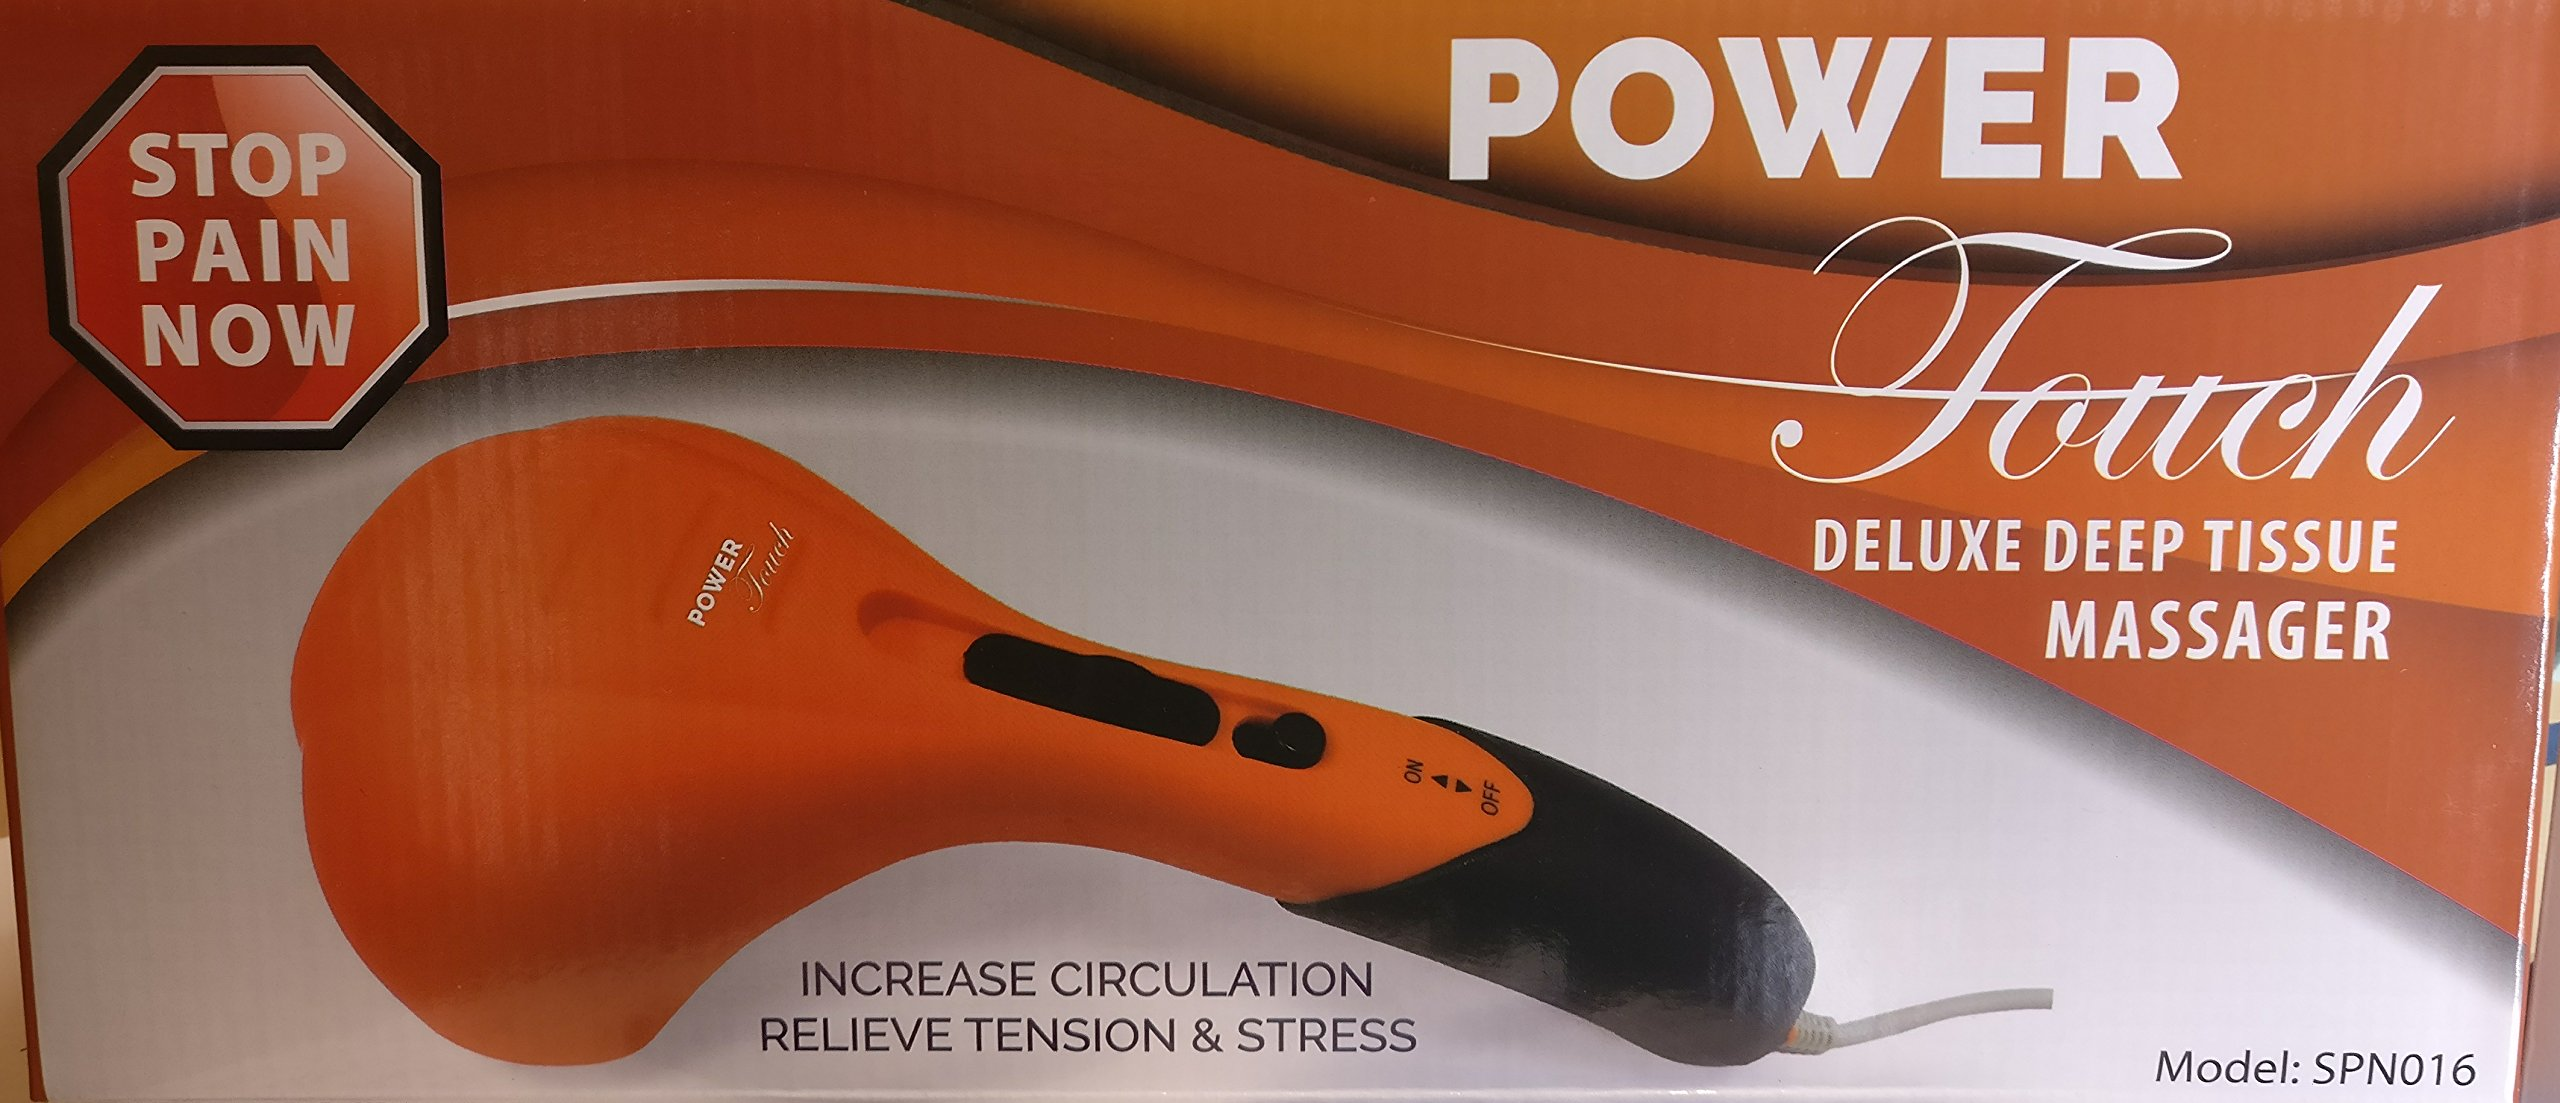 Power Touch Deluxe Deep Tissue Massager Orange